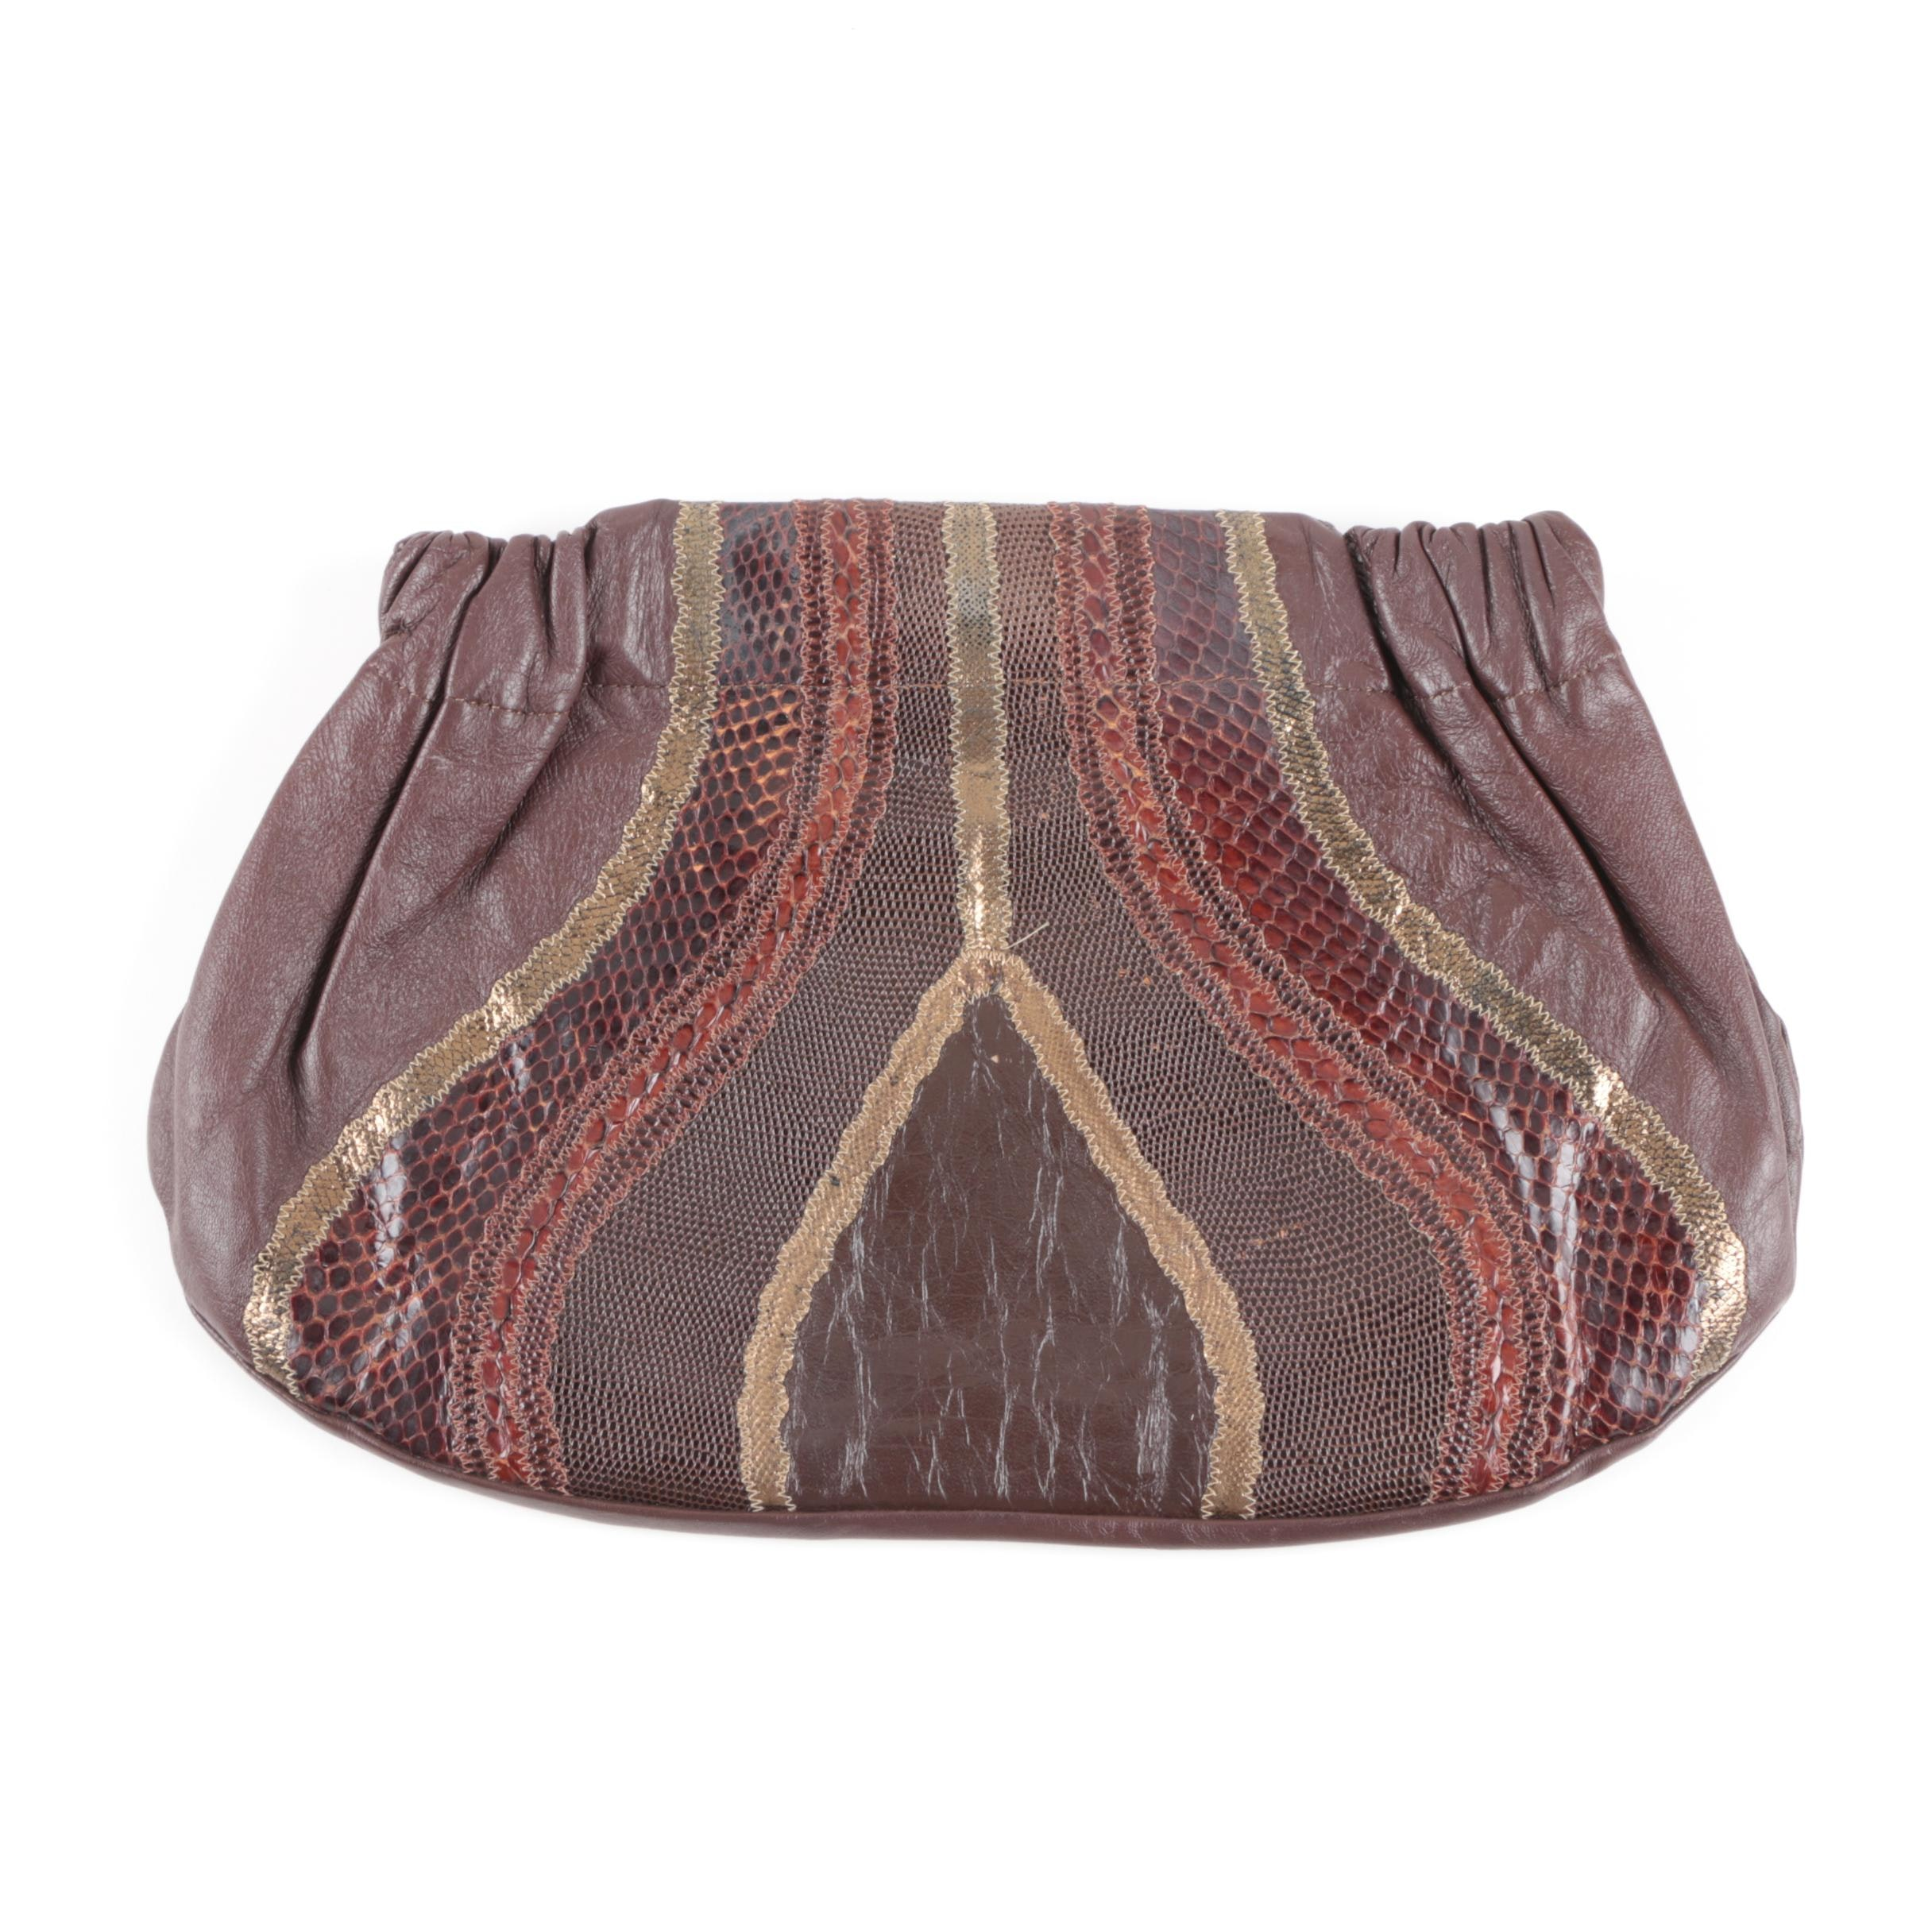 Vintage Carlos Falchi Leather and Reptile Patchwork Clutch